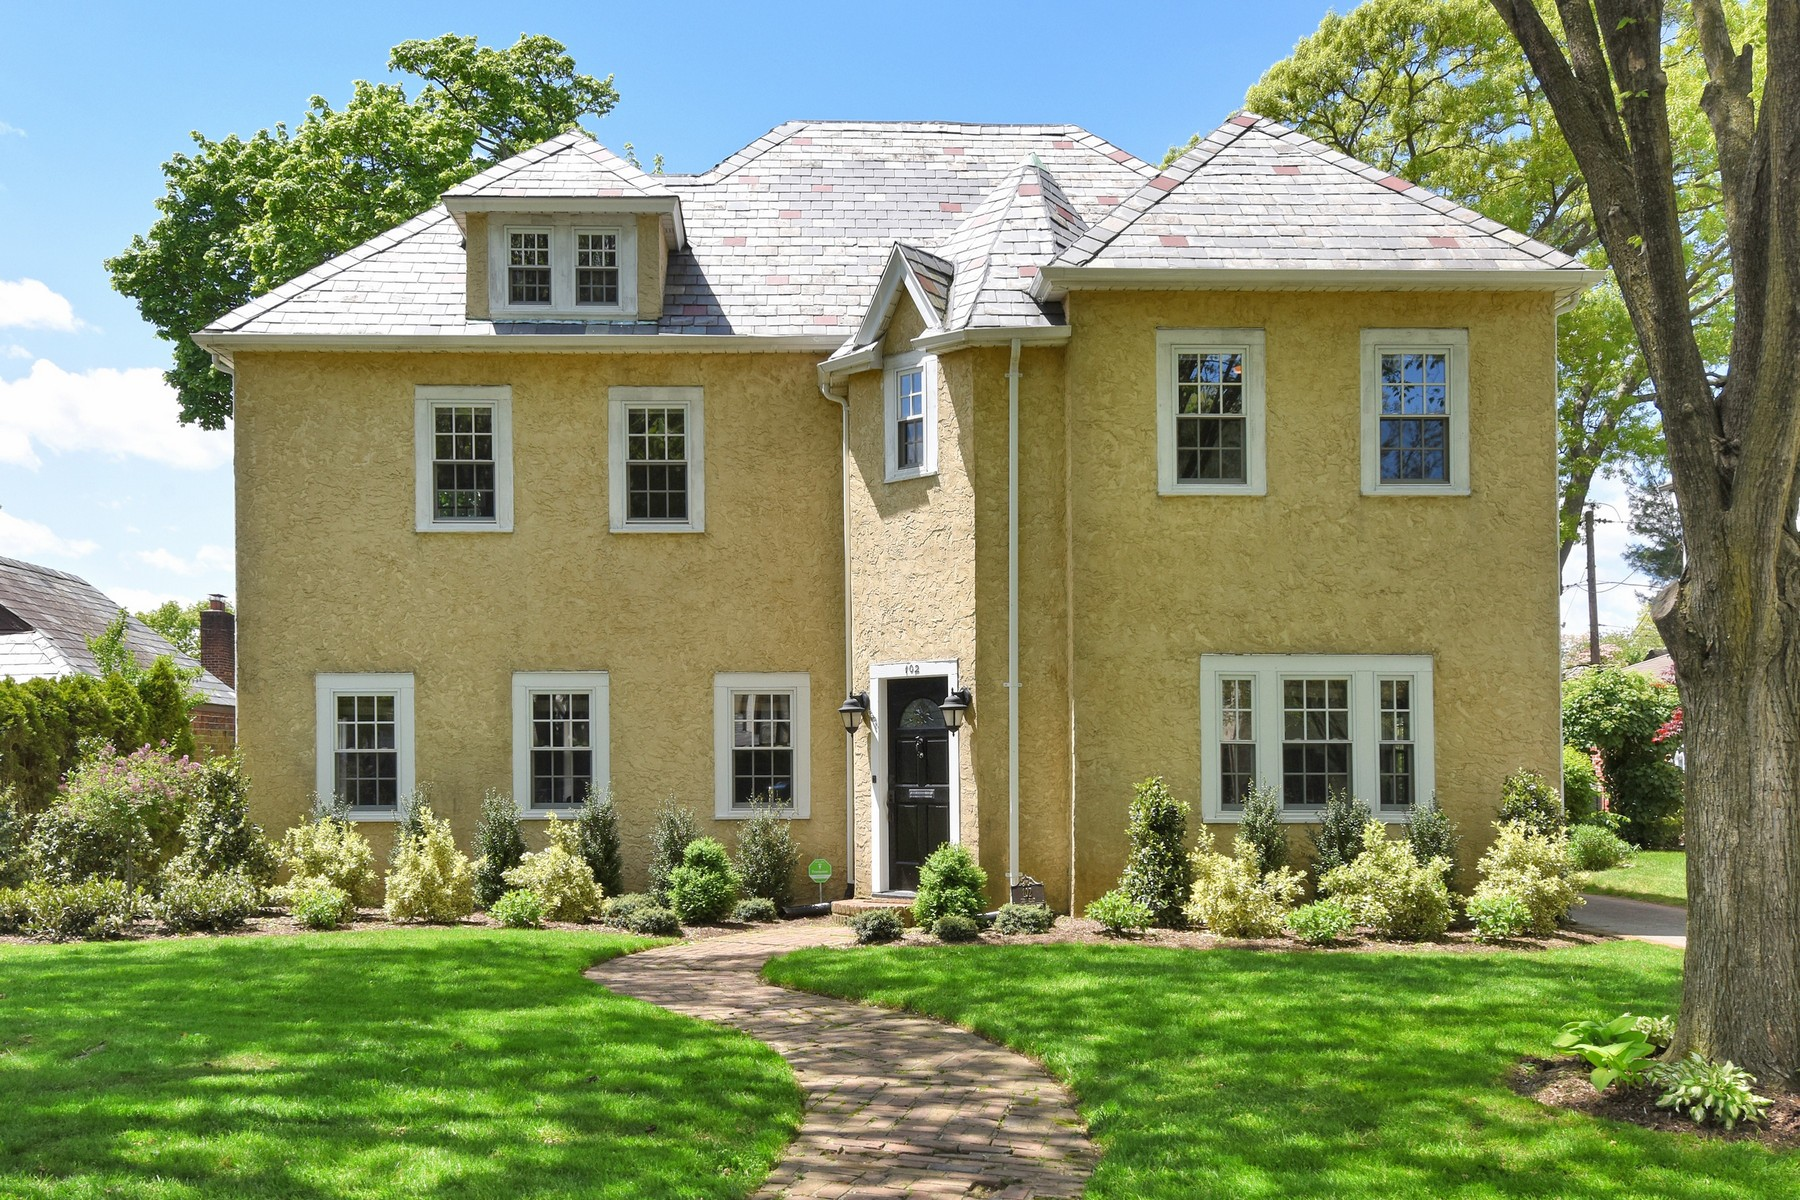 Single Family Homes for Sale at Garden City 102 Lee Rd Garden City, New York 11530 United States